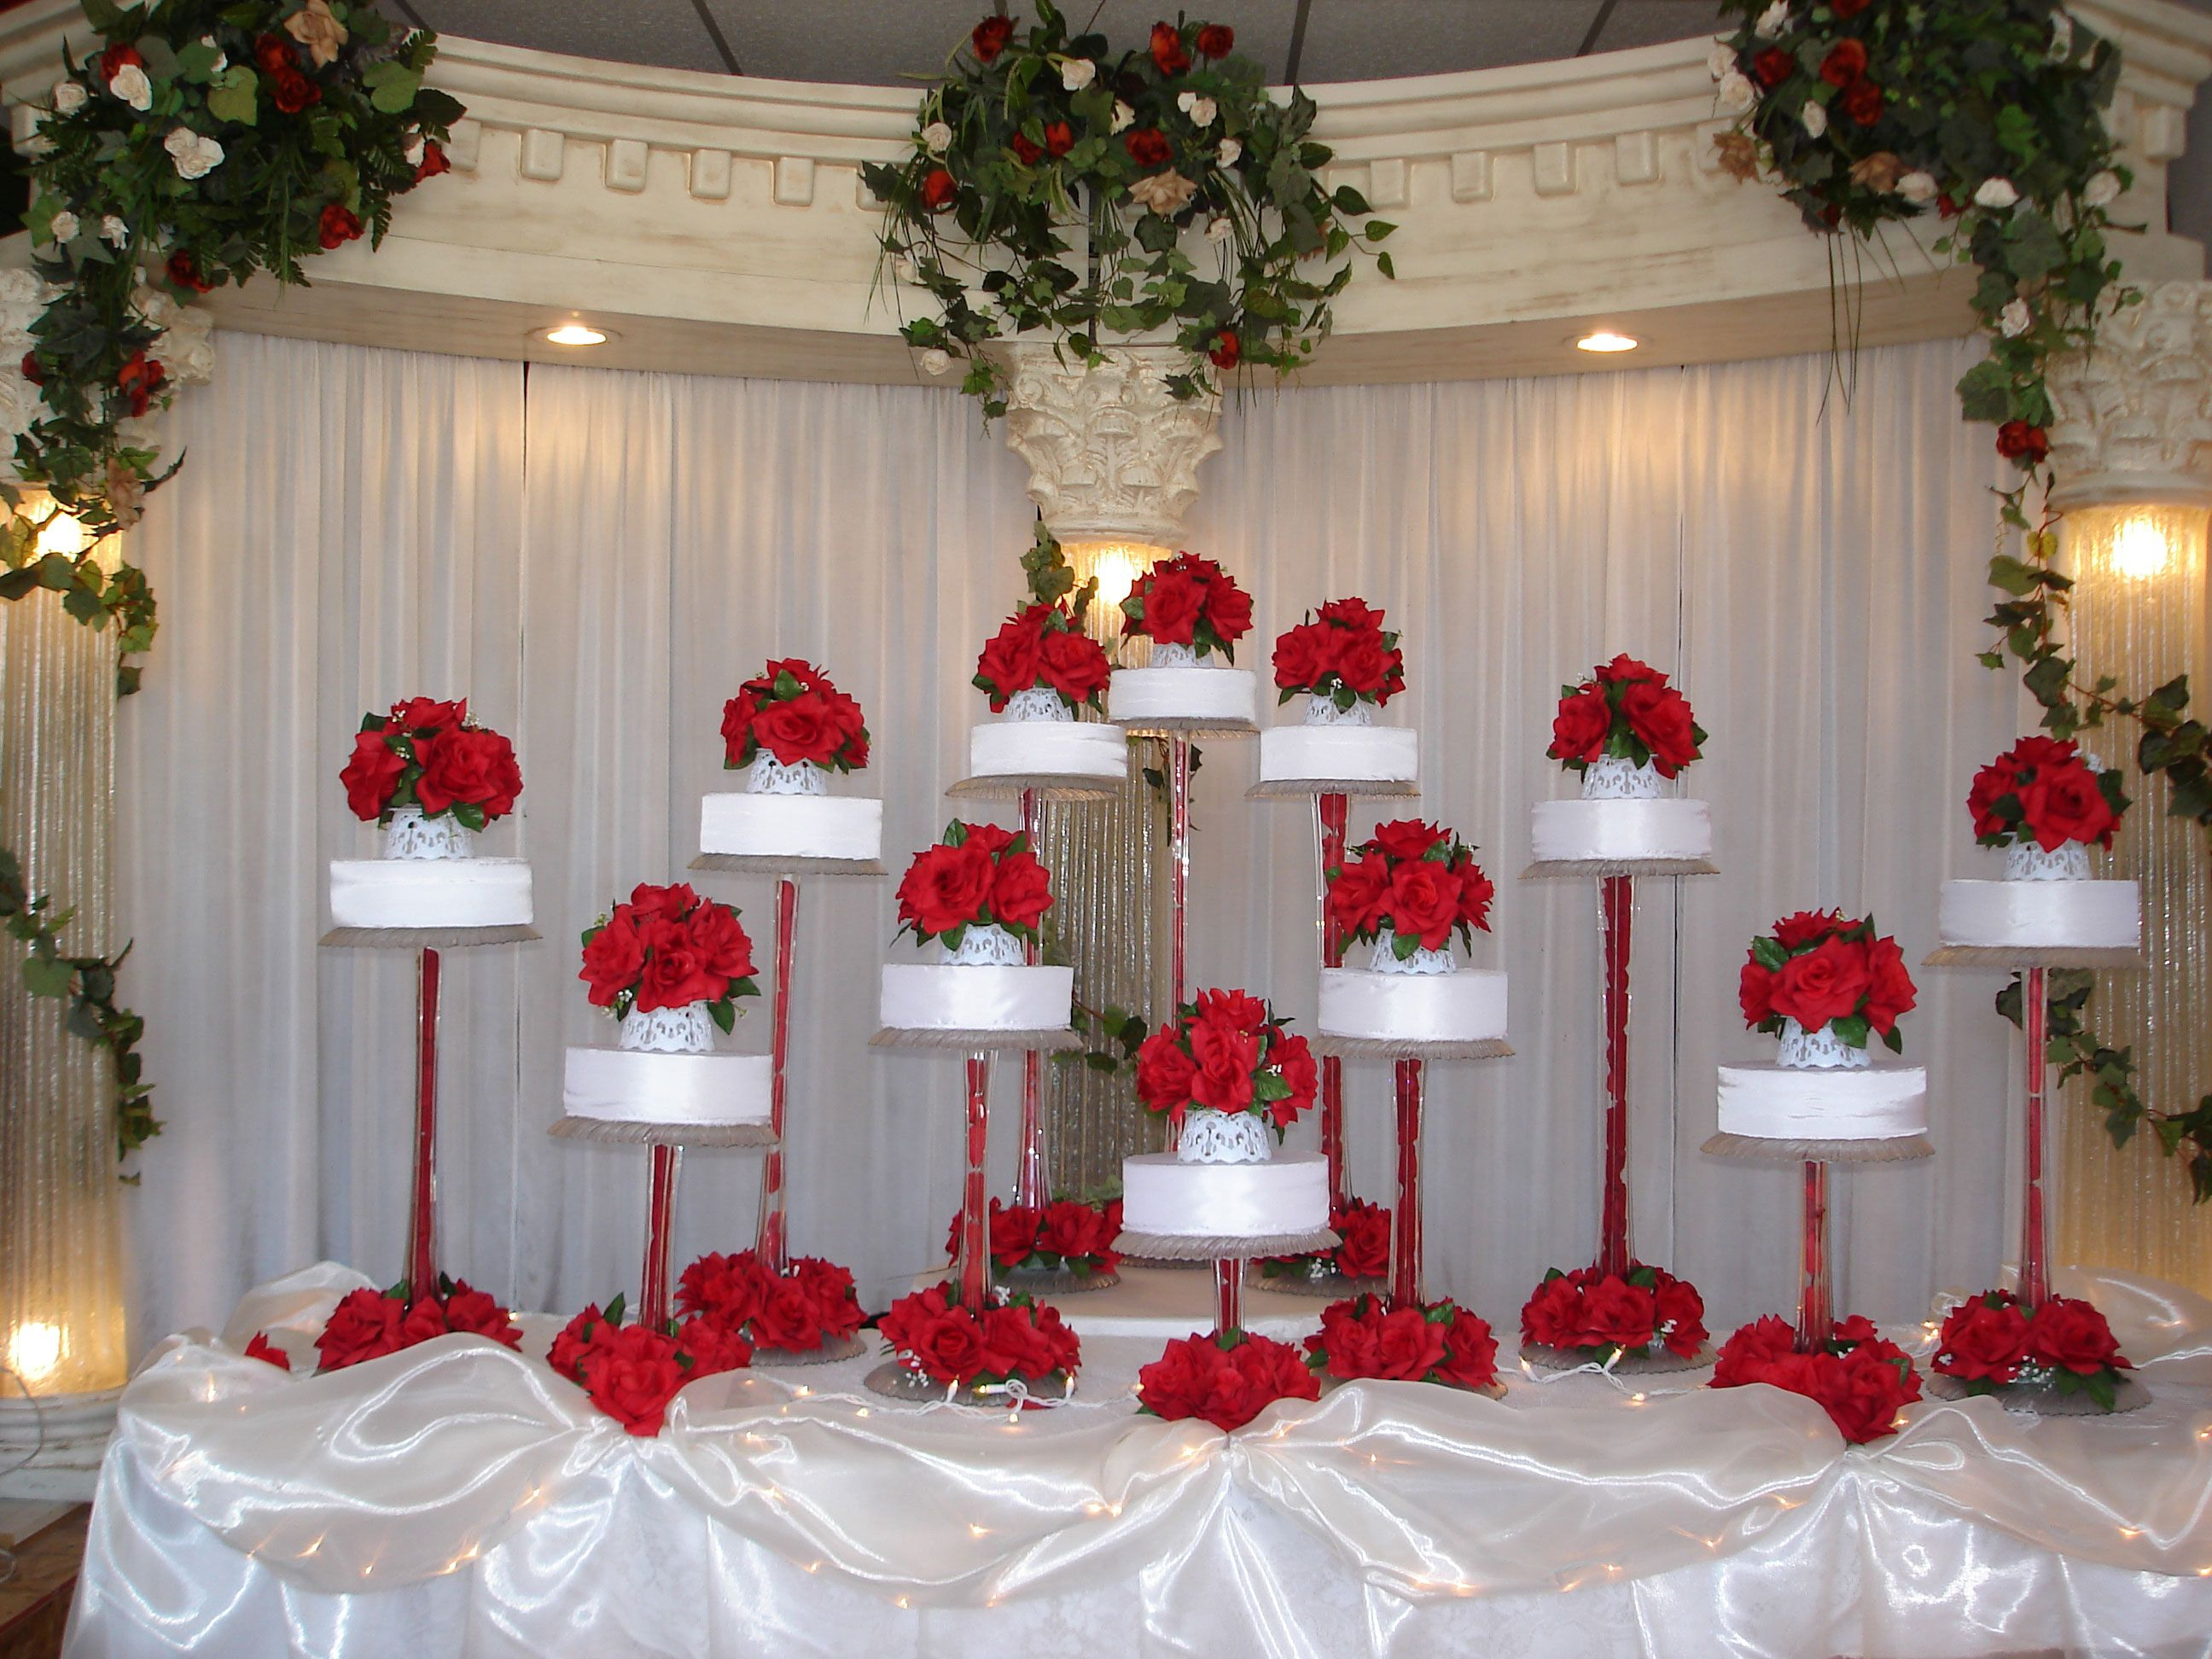 Salon Decoraciones Decoraciones Bodas Pictures The